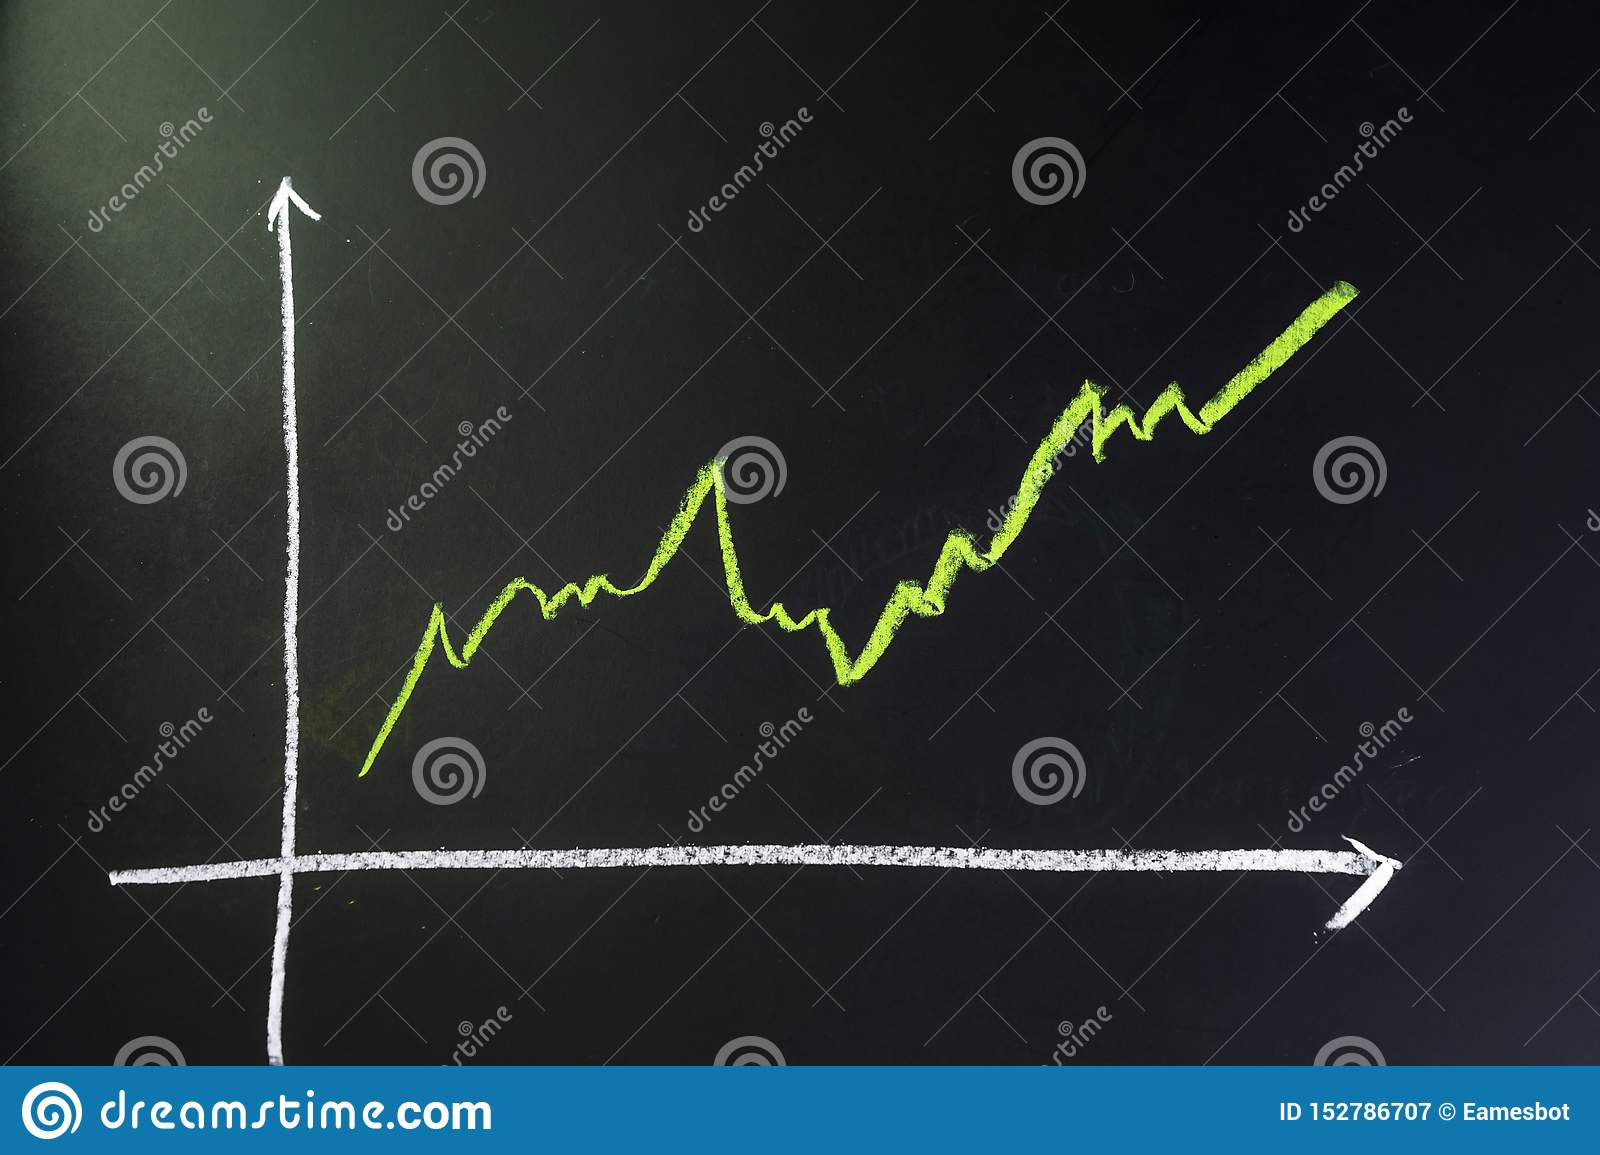 Stock and investment growth, dark black blackboard with chalk drawing green line as stock return growth graph with copy space